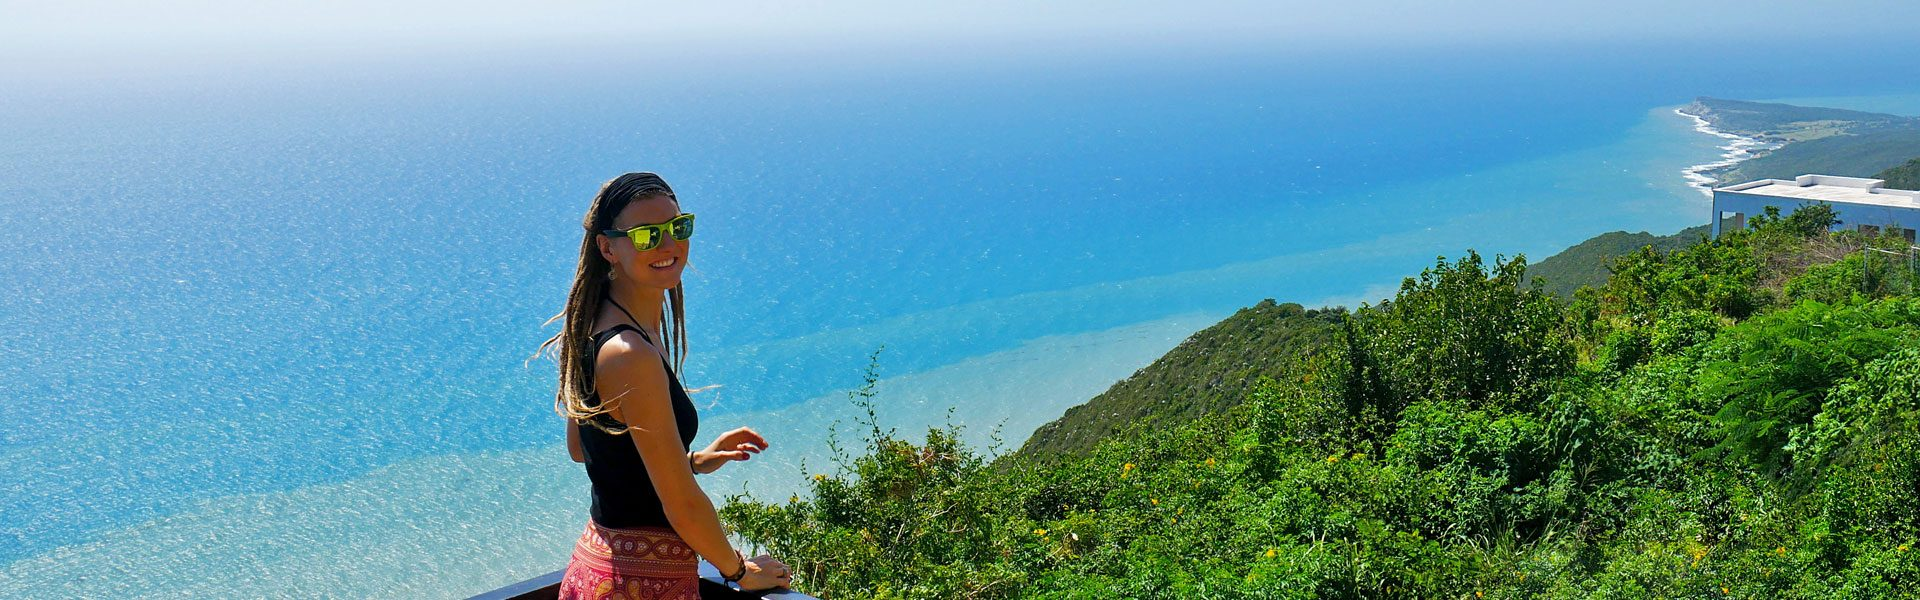 Rasta girl at Lovers Leap overlooking ocean in Southfield, Jamaica